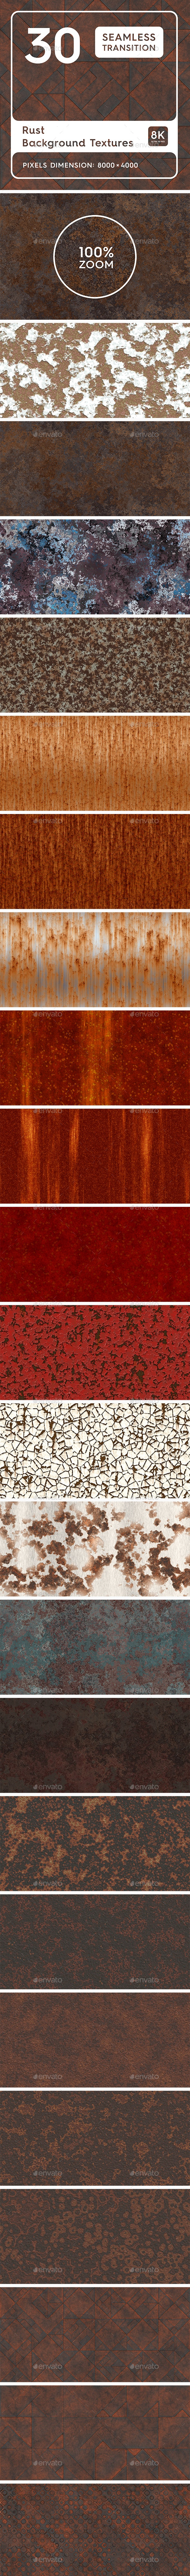 30 Rust Background Textures. Seamless Transition. - Metal Textures